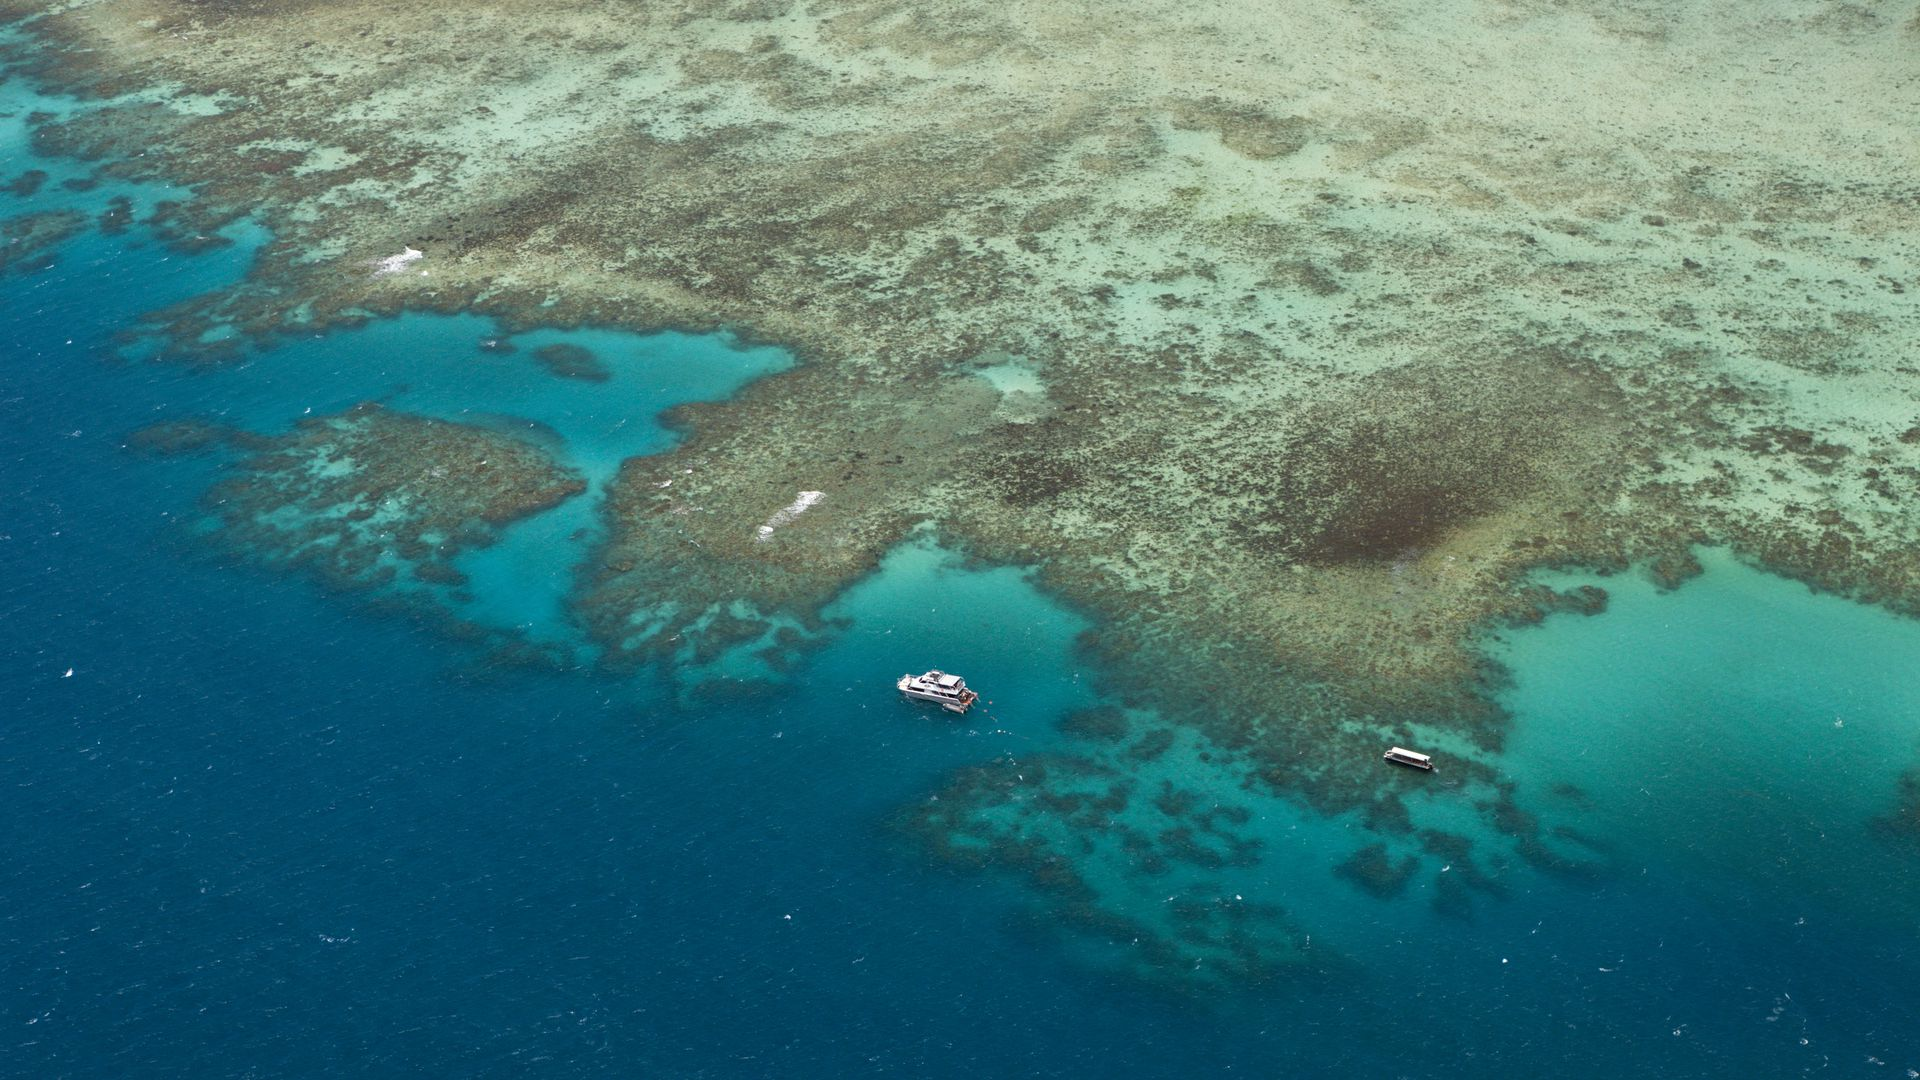 The Great Barrier Reef from an aerial view.